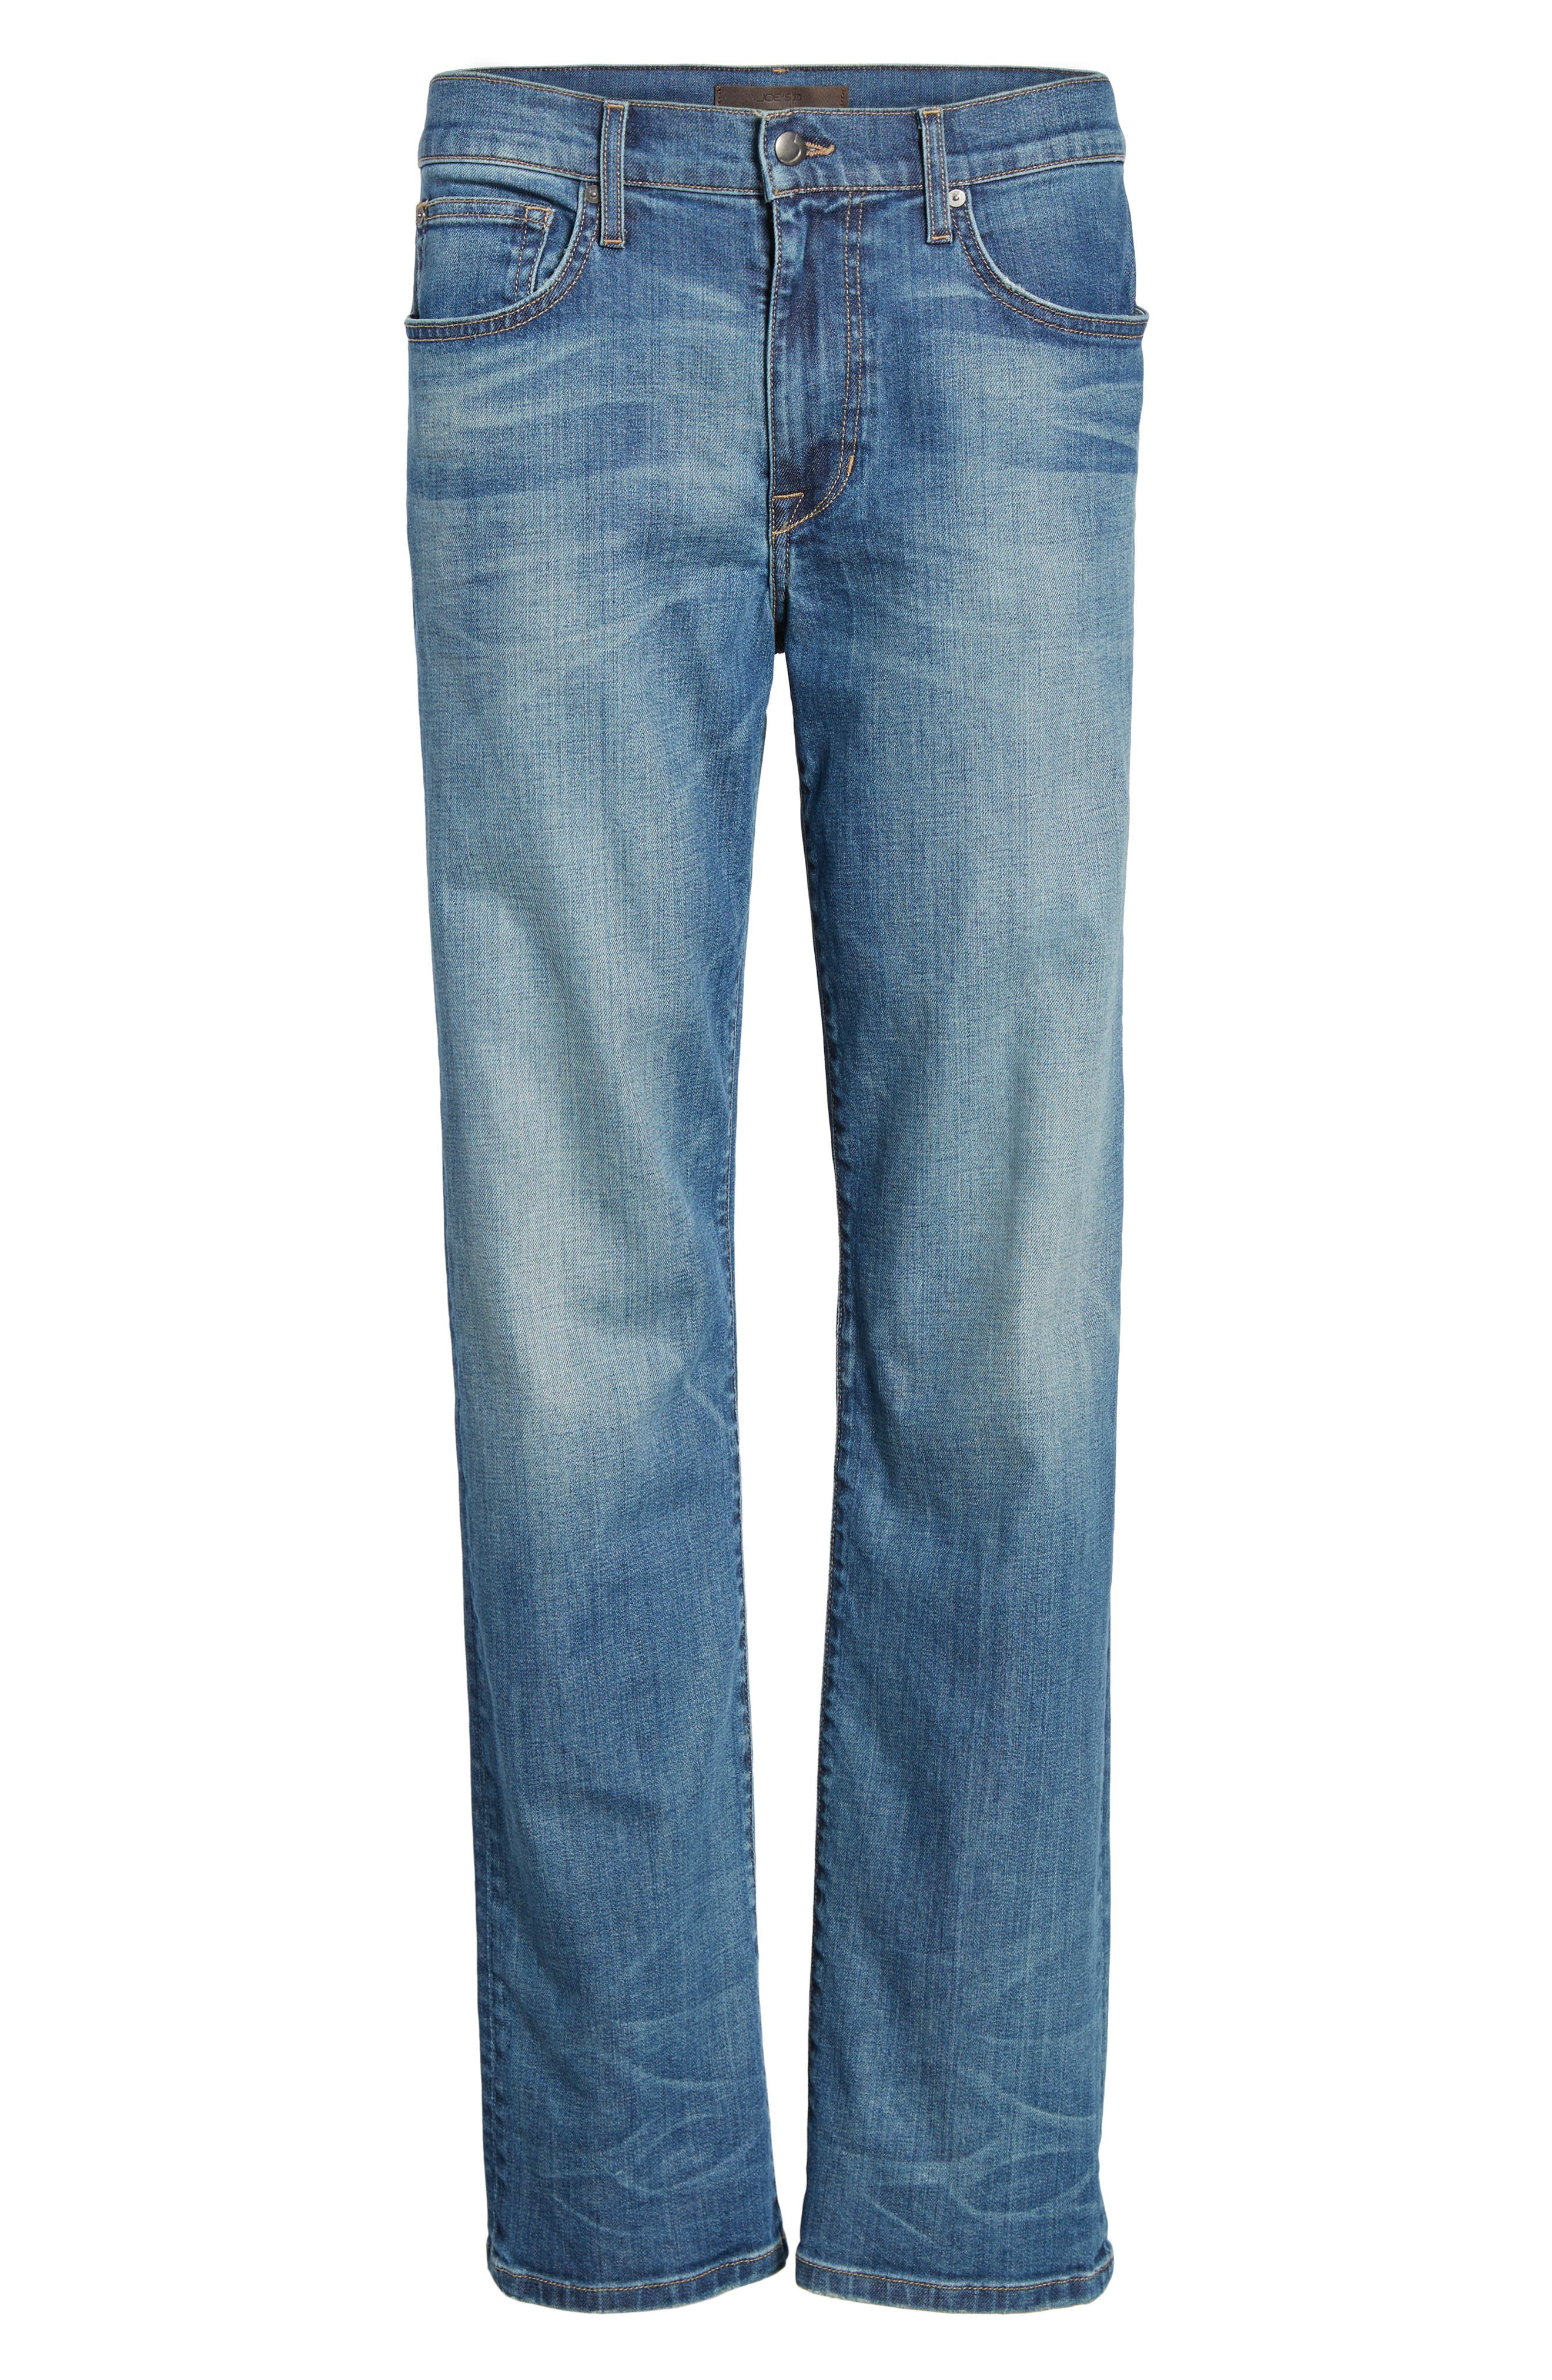 Classic Straight Fit Jeans,                             Alternate thumbnail 6, color,                             Westley